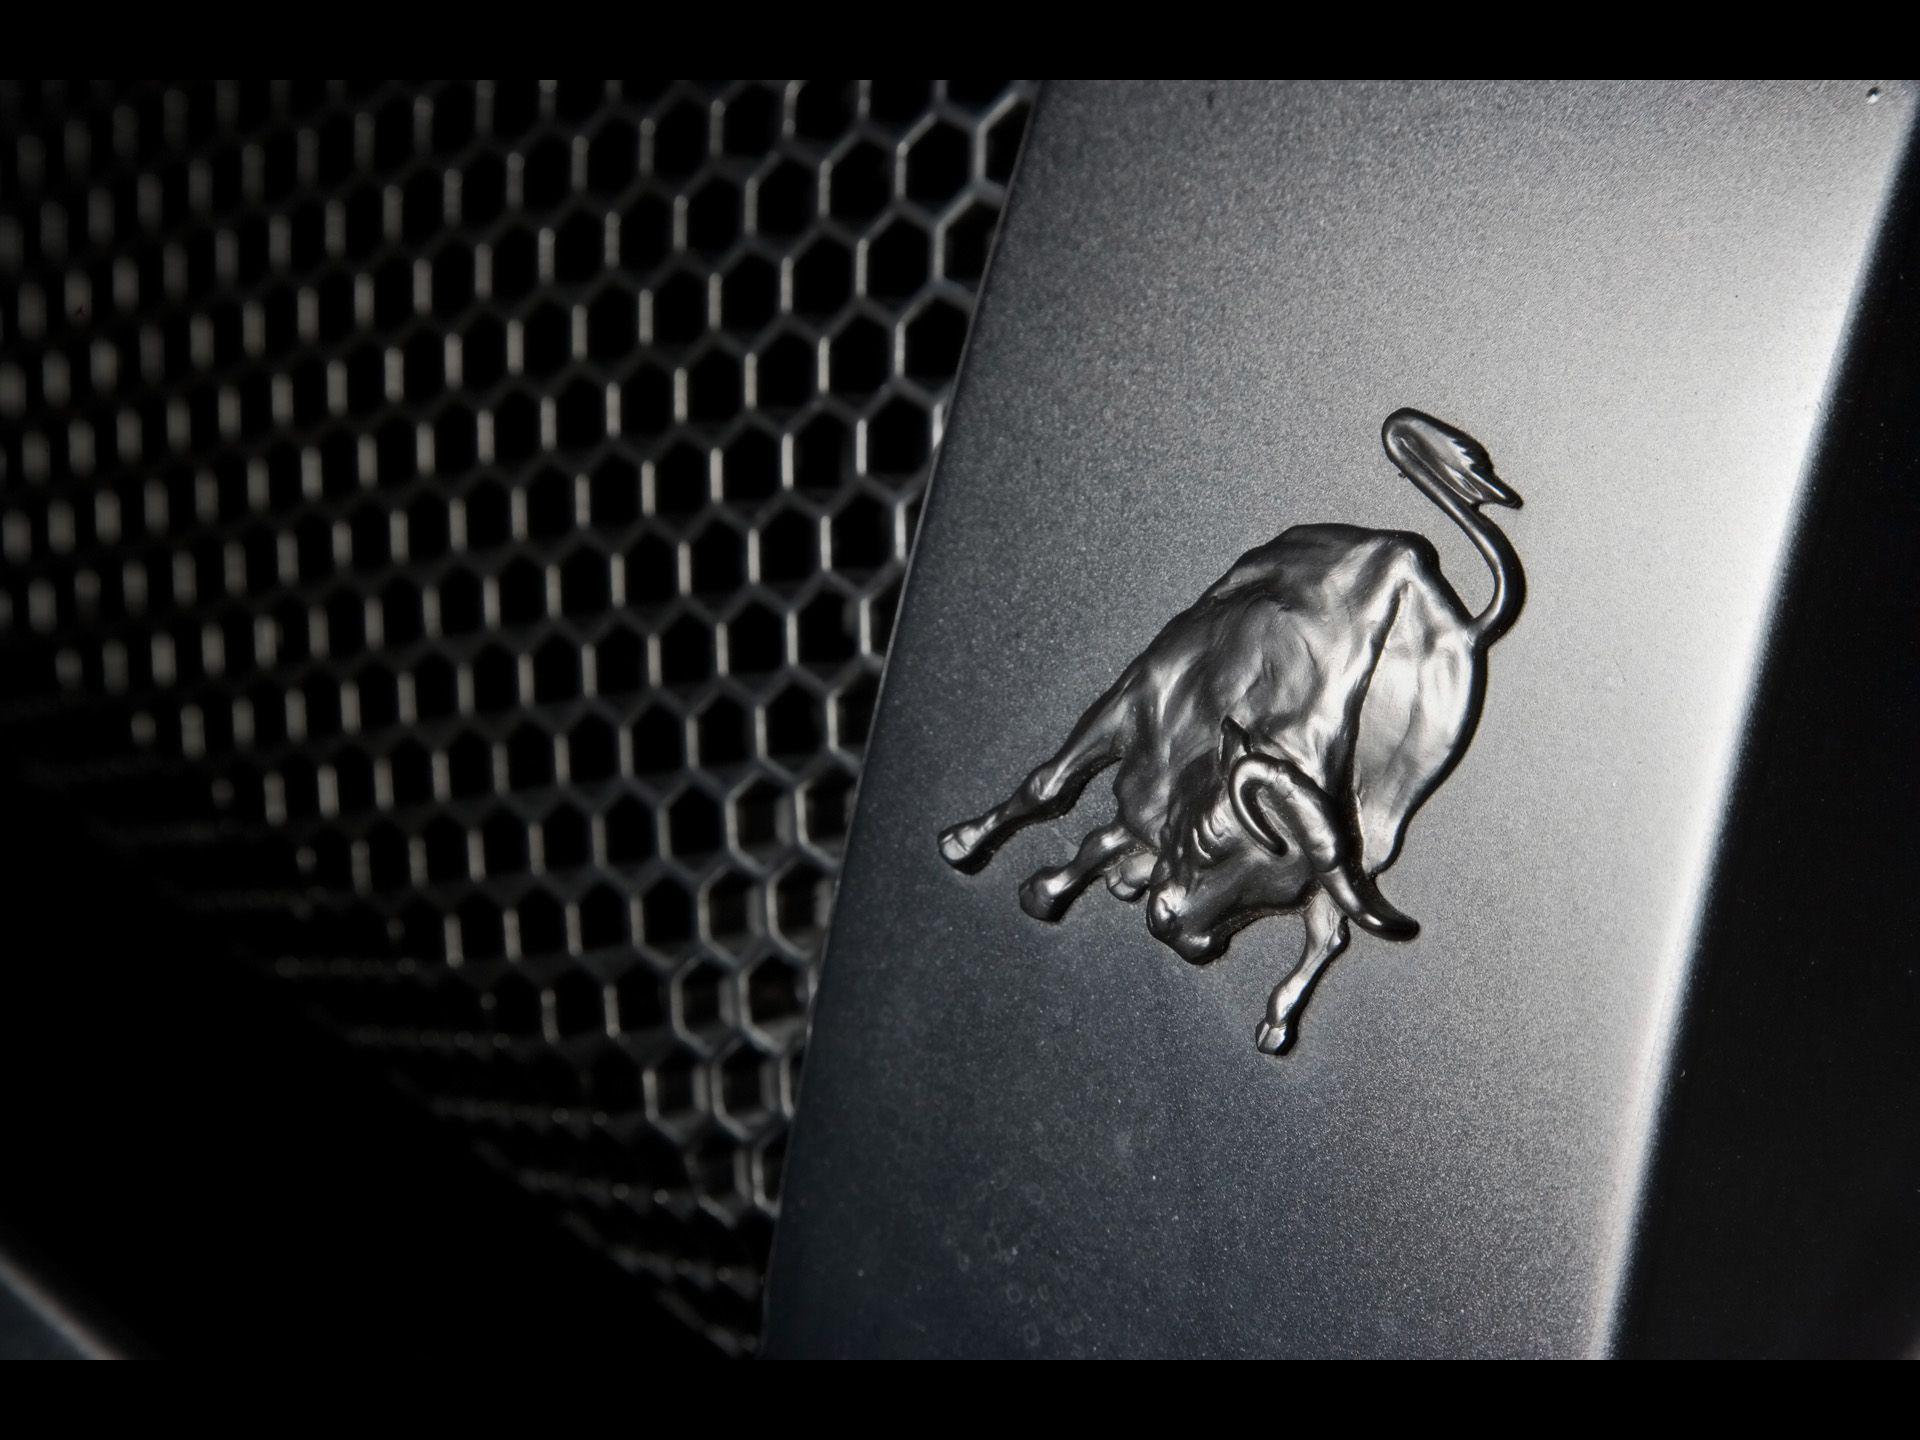 wallpapers for lamborghini bull logo wallpaper - Real Lamborghini Bull